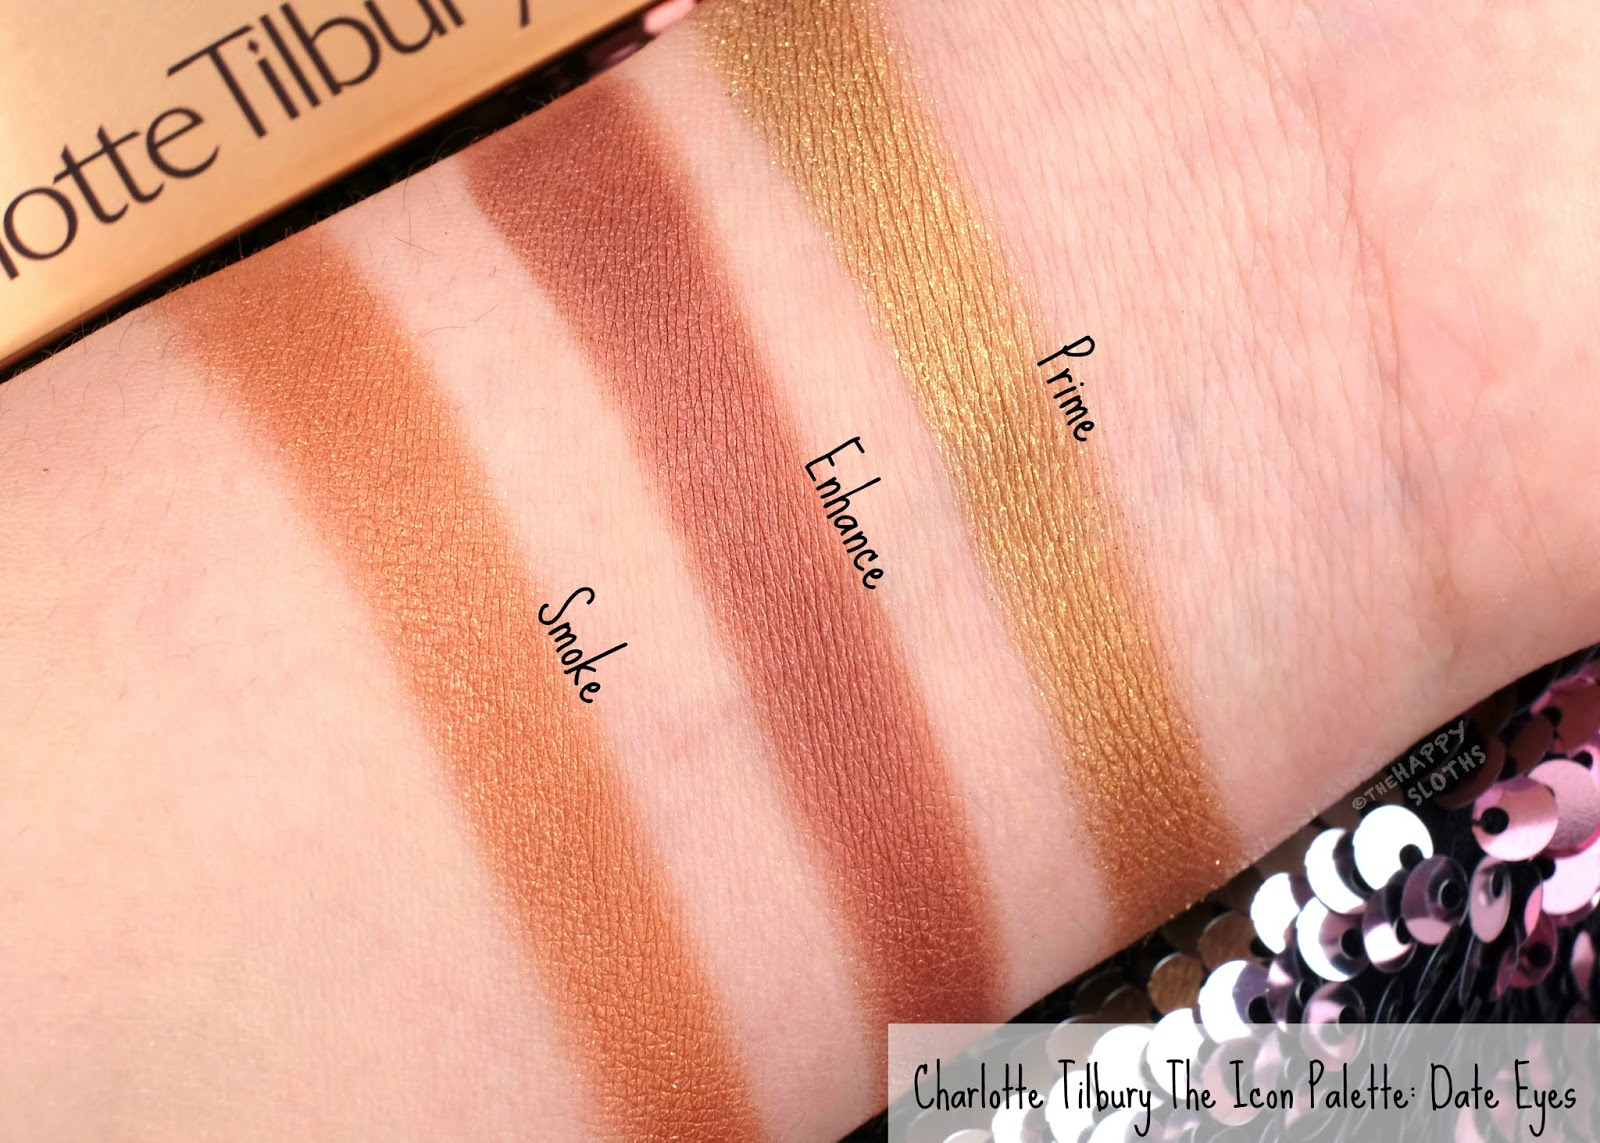 Charlotte Tilbury | The Icon Eyeshadow Palette: Review and Swatches